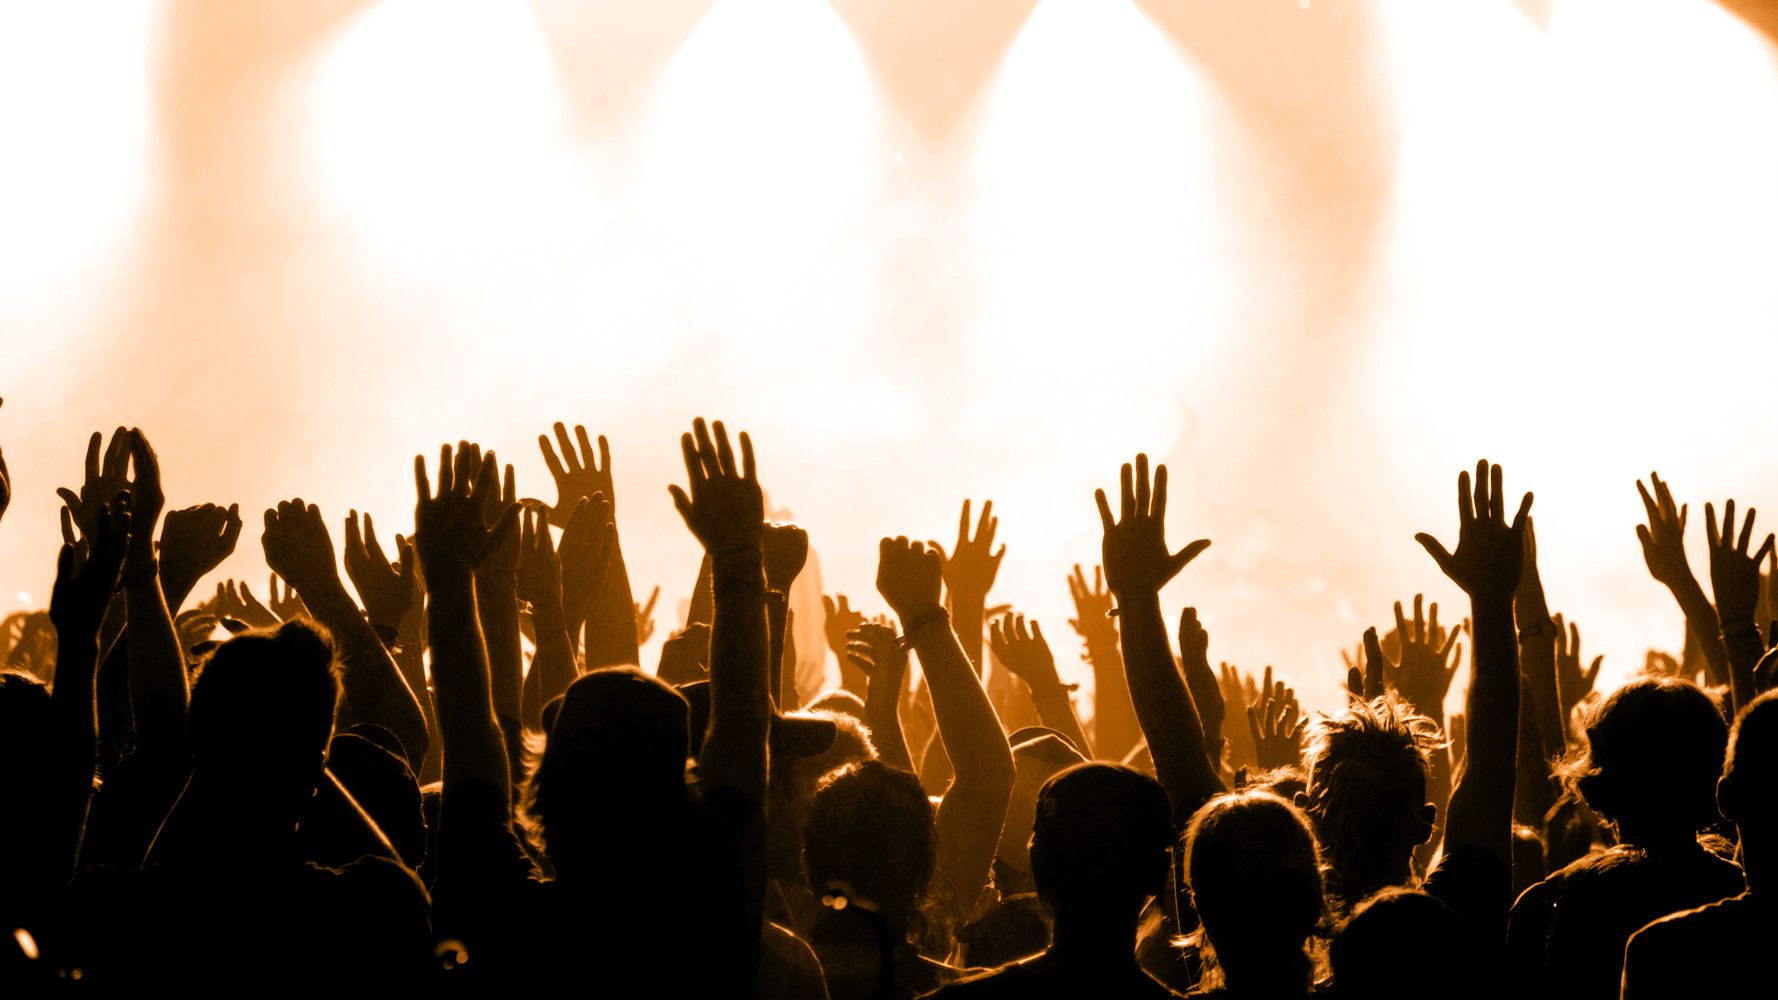 Worshipping with a congregation Image source